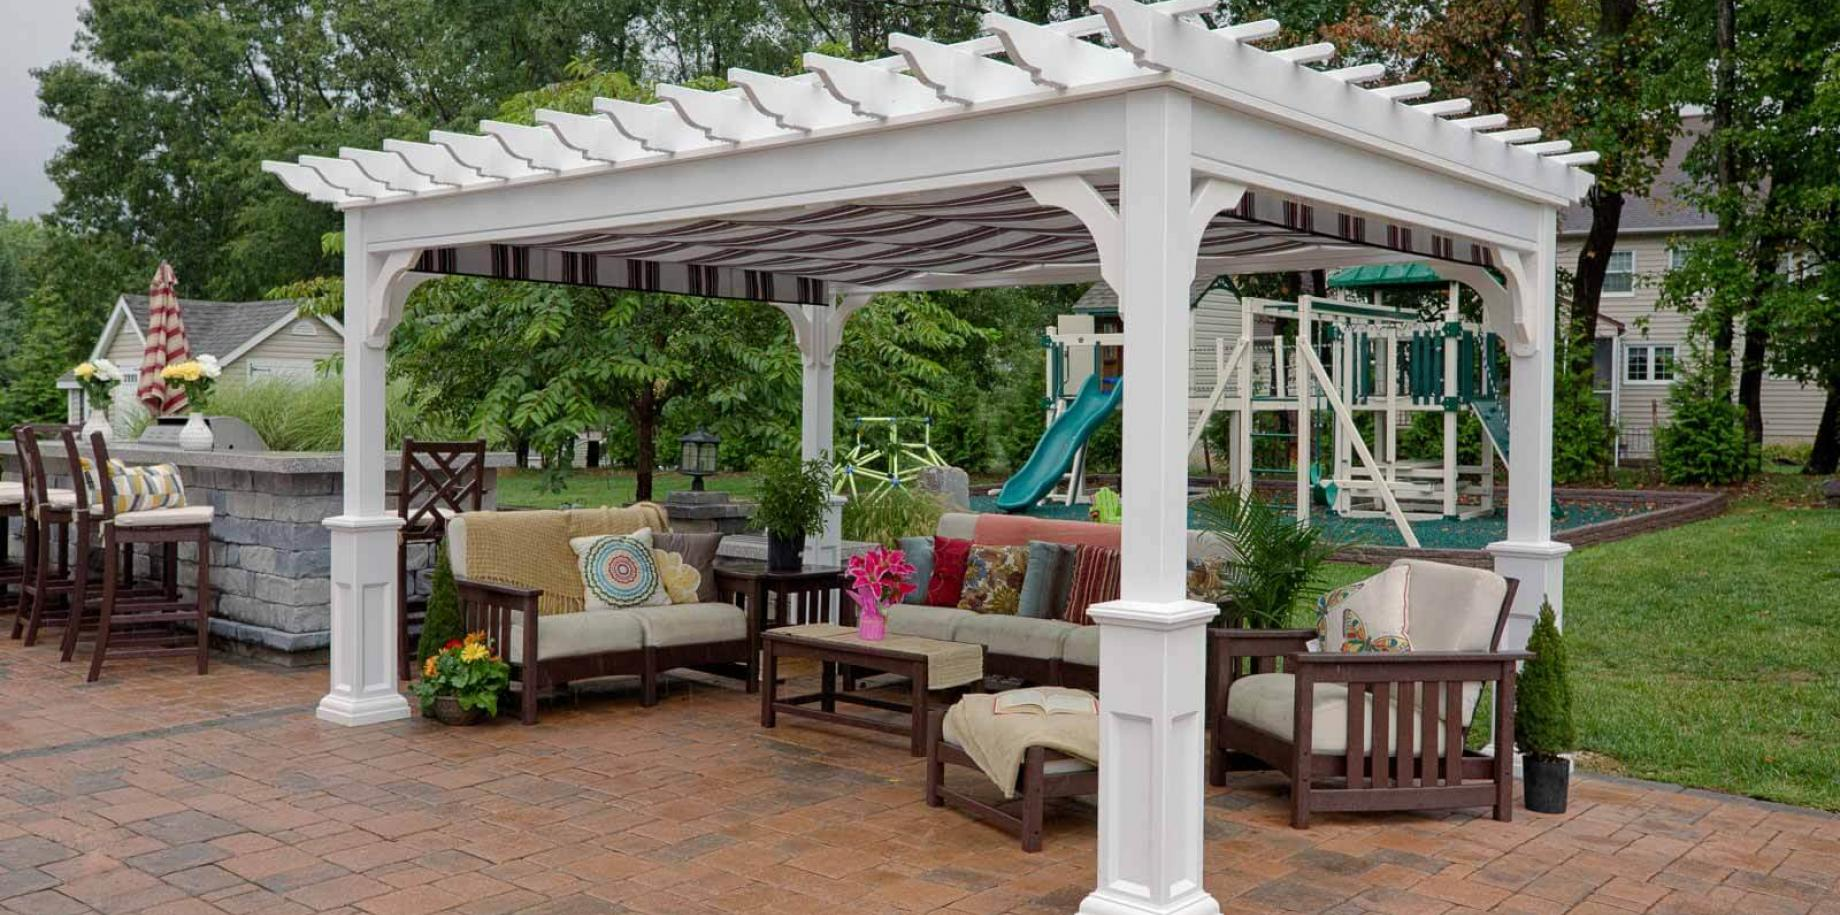 Difference between traditional and modern pergola designs